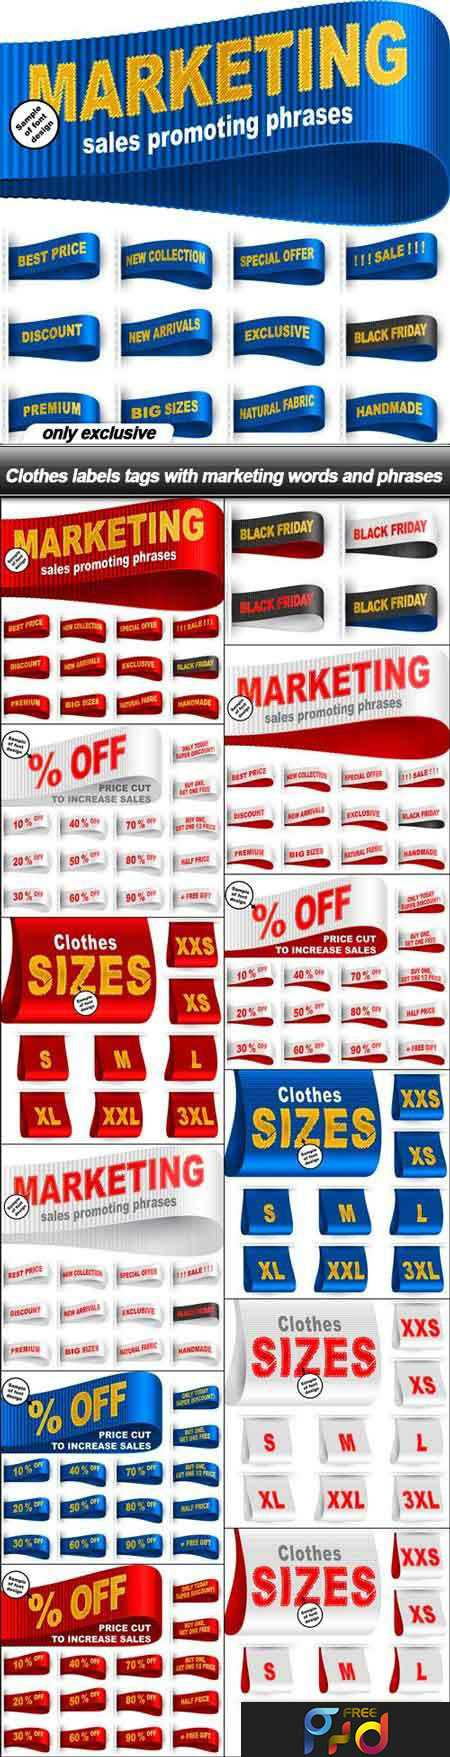 freepsdvn-com_1478164917_clothes-labels-tags-with-marketing-words-and-phrases-13-eps